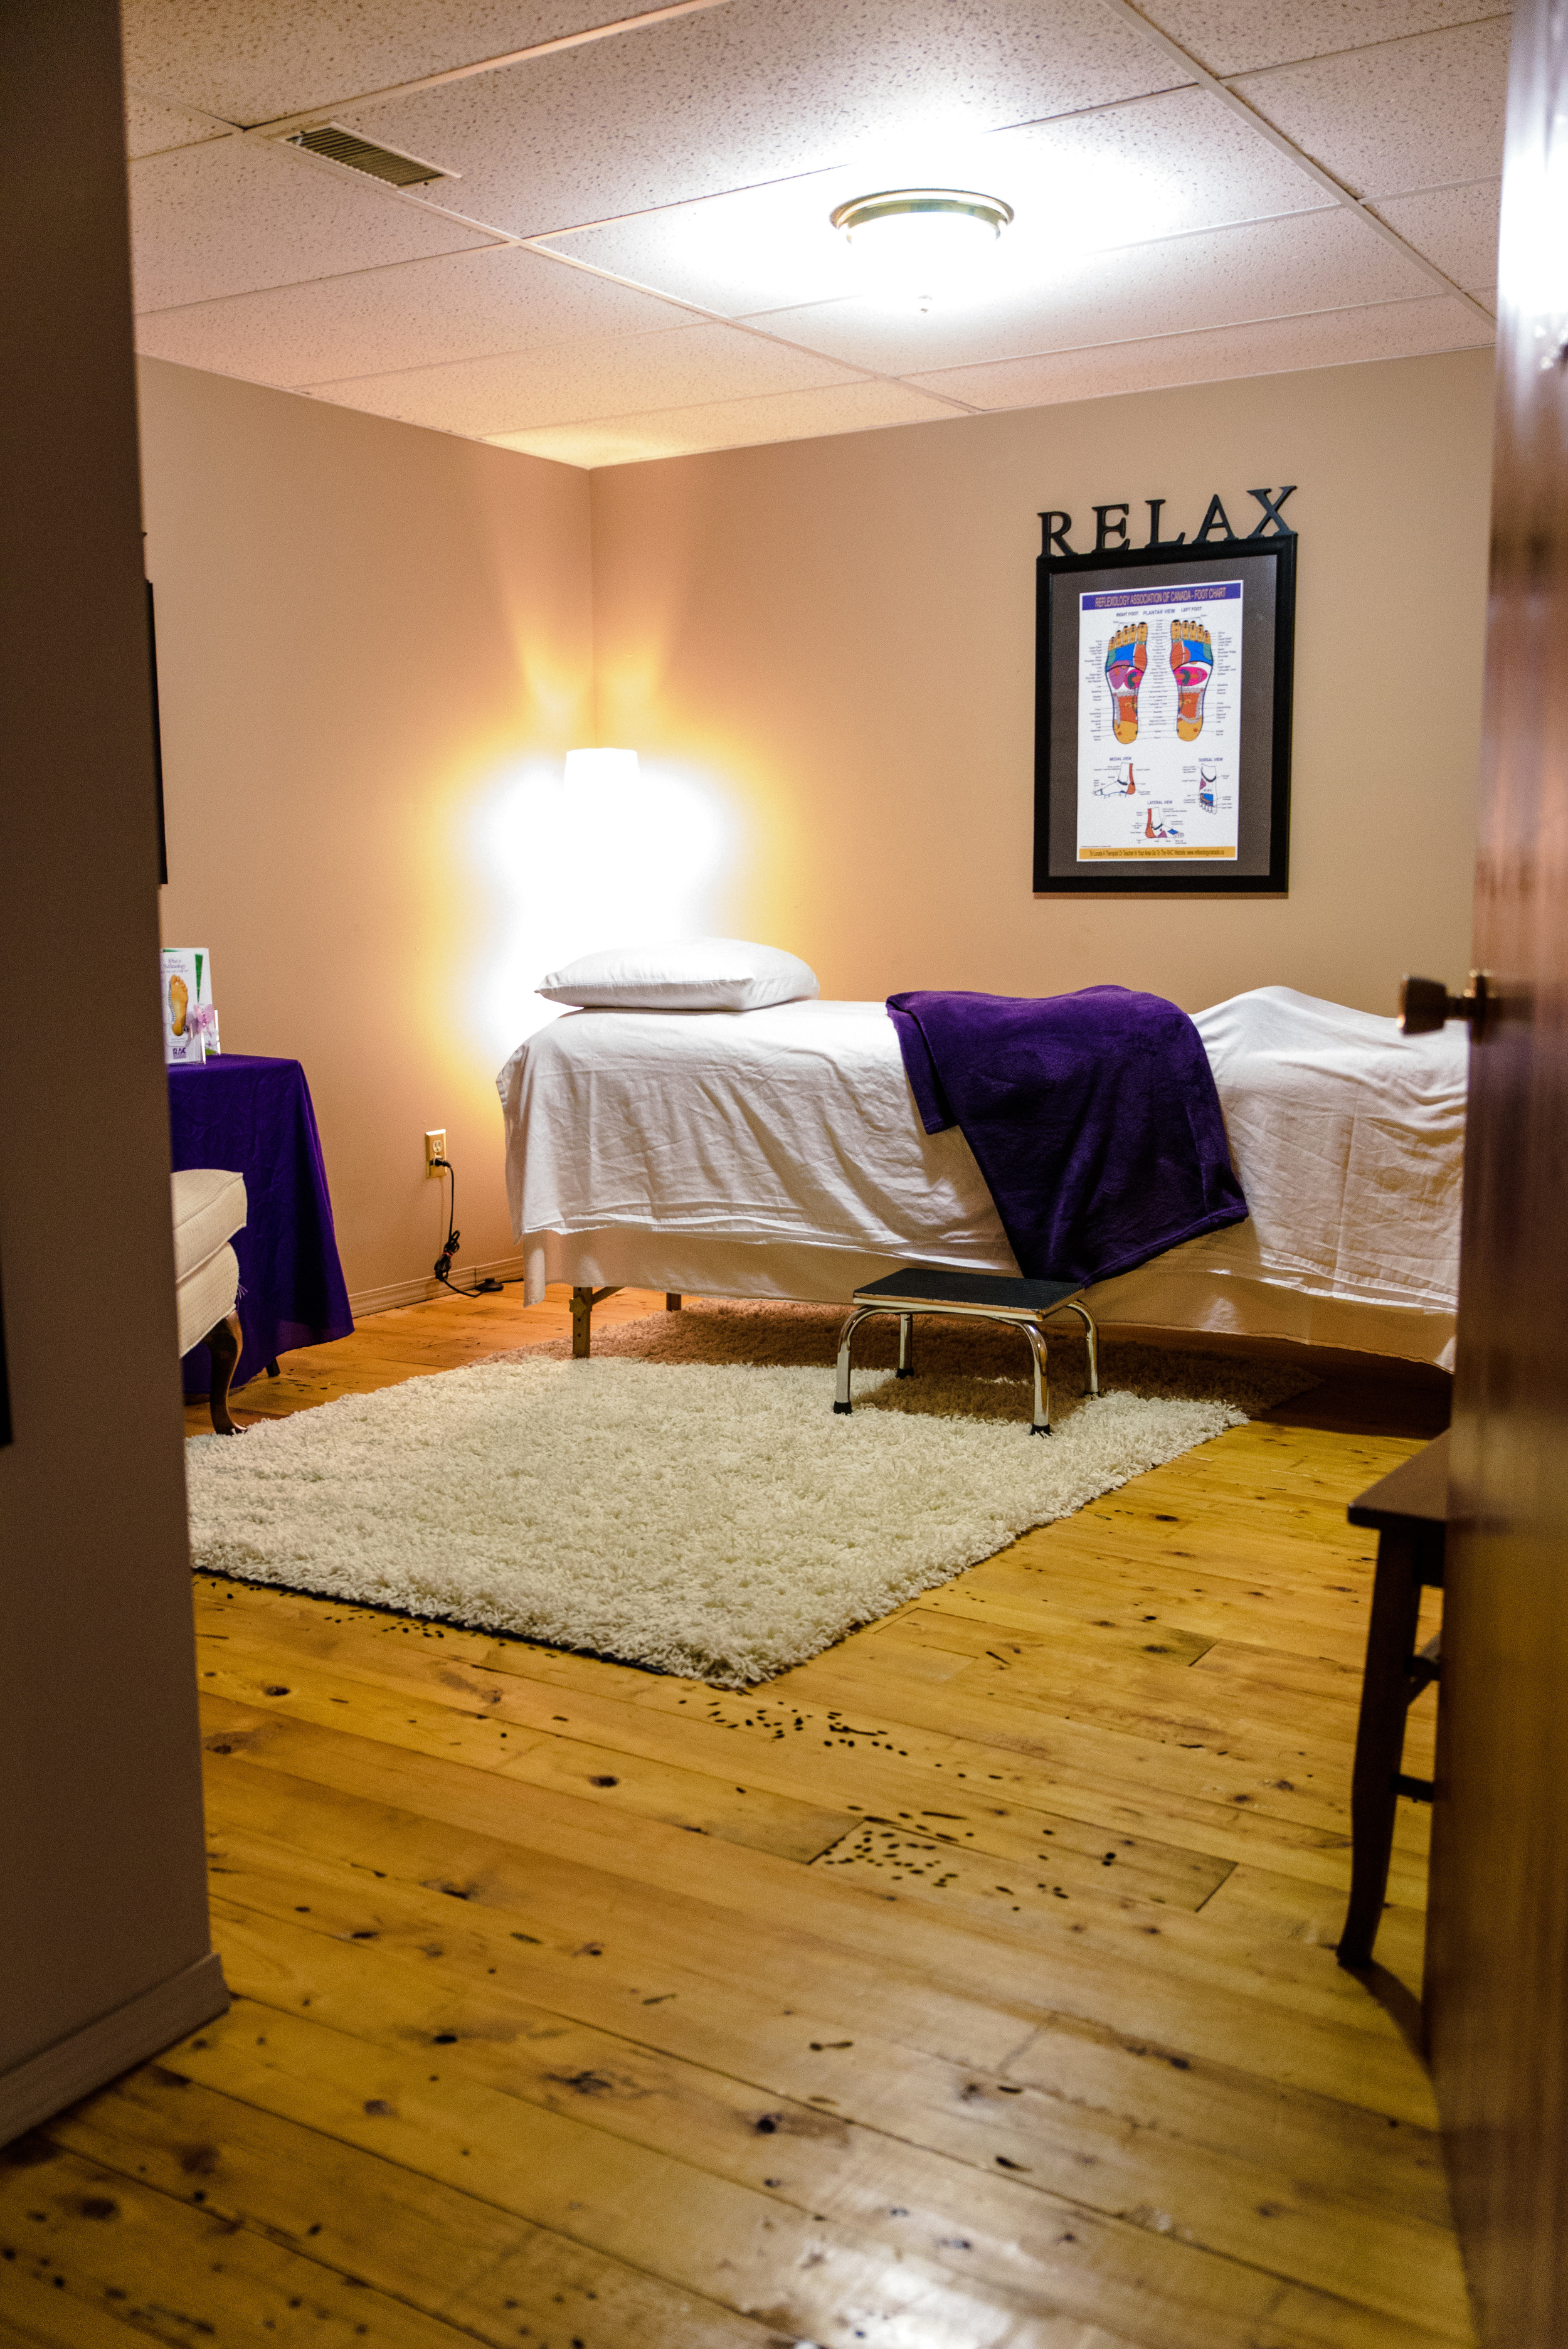 Here is the treatment room - ready to pamper you.